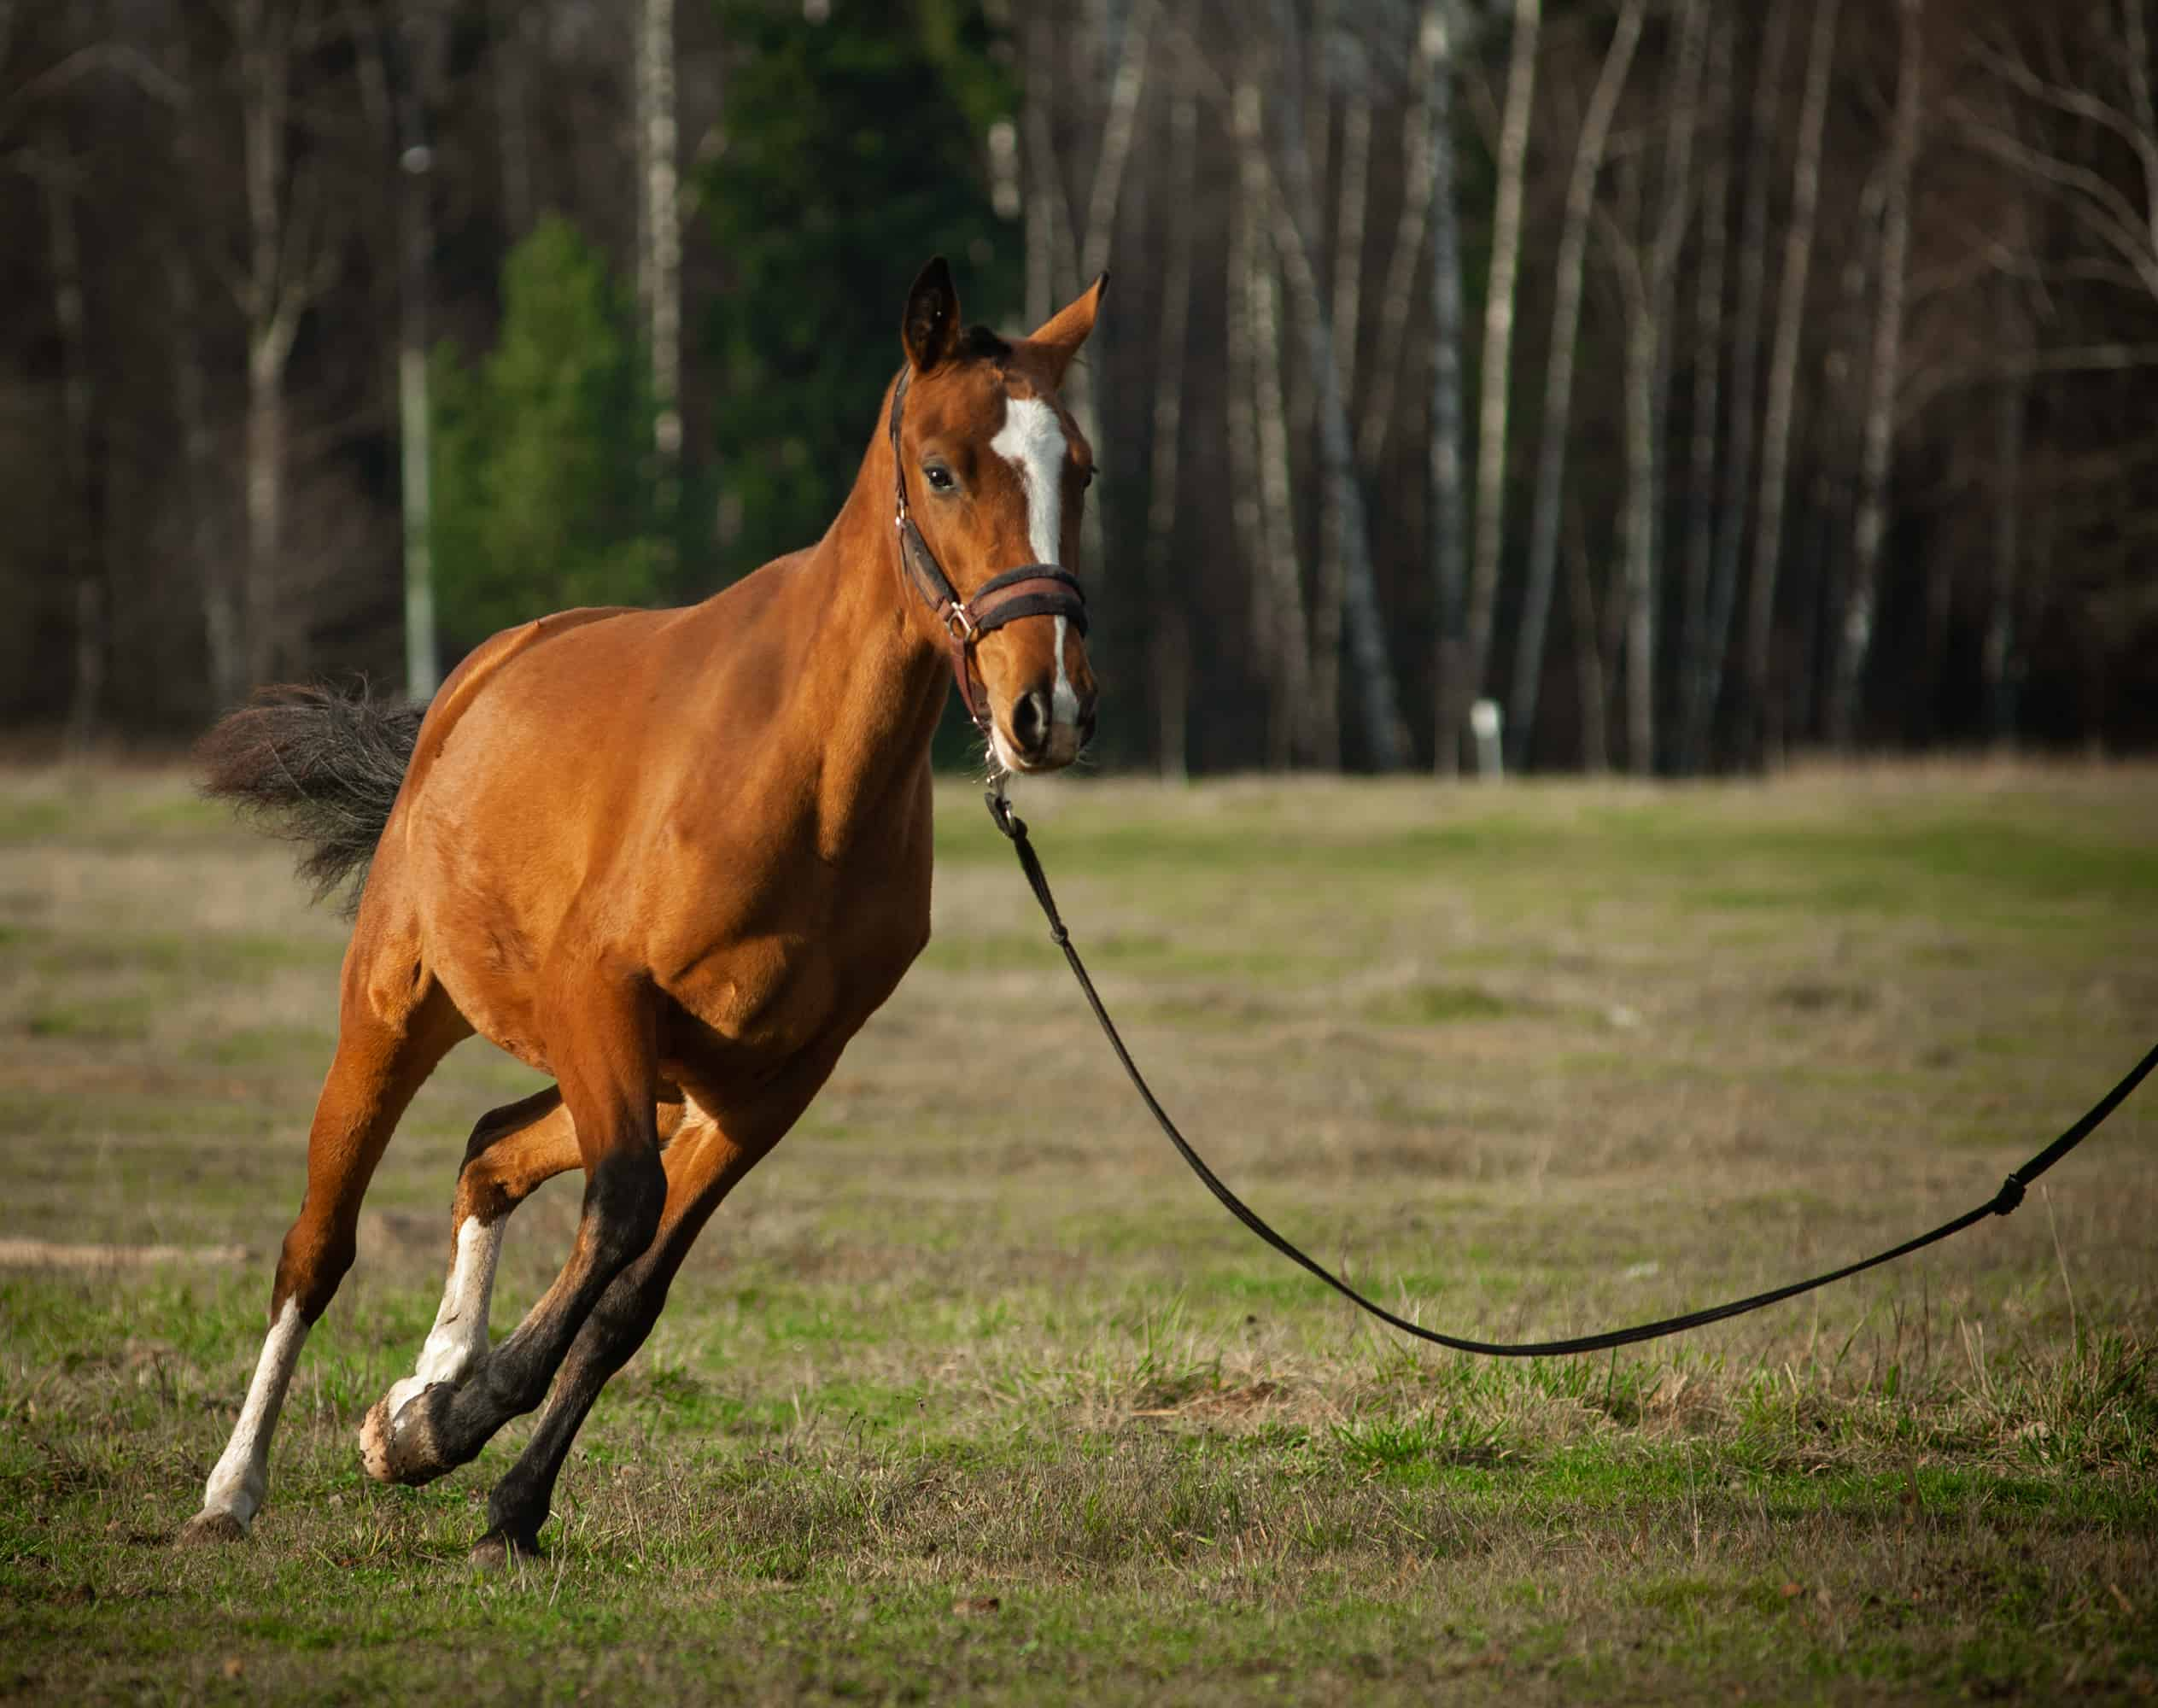 Young horse on a training in fields. Horse on the cord. Dressage horse running